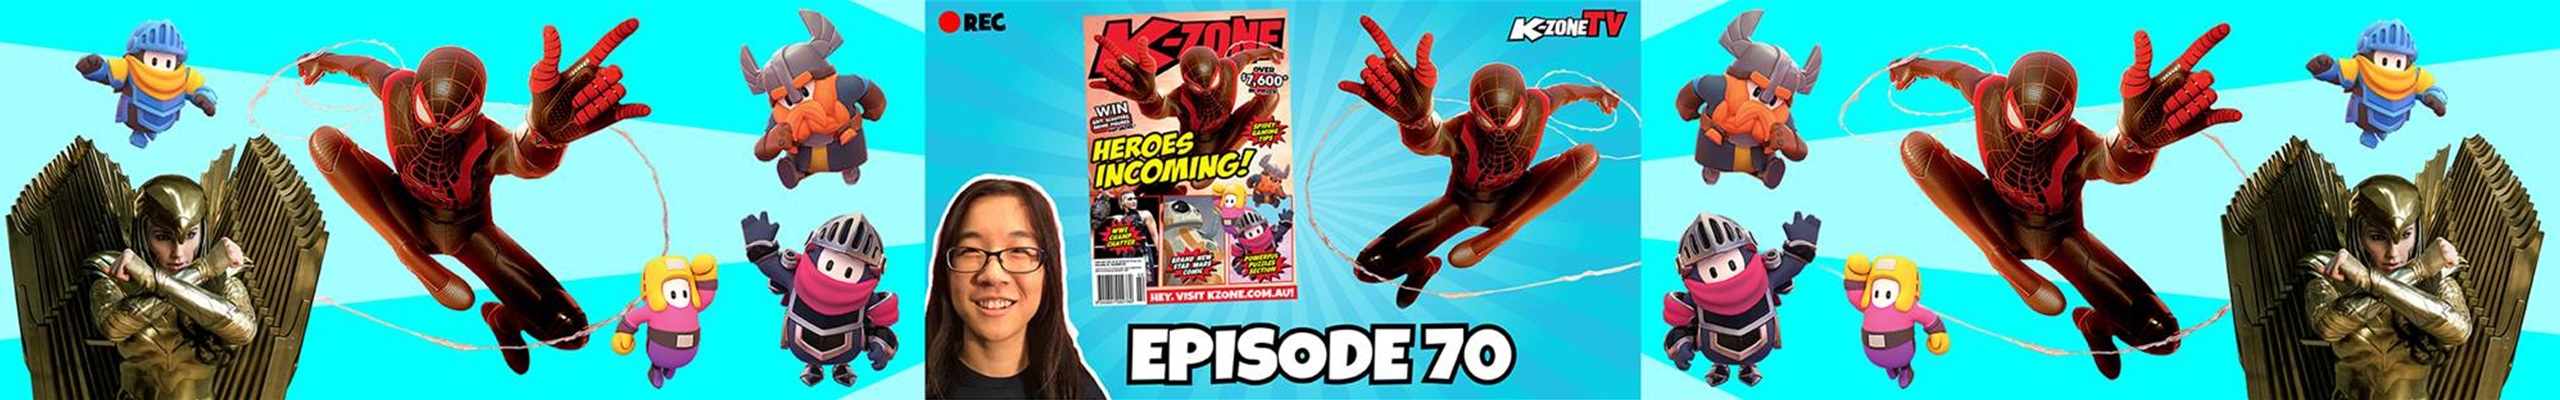 K-Zone TV Episode 70: Heroes Incoming!